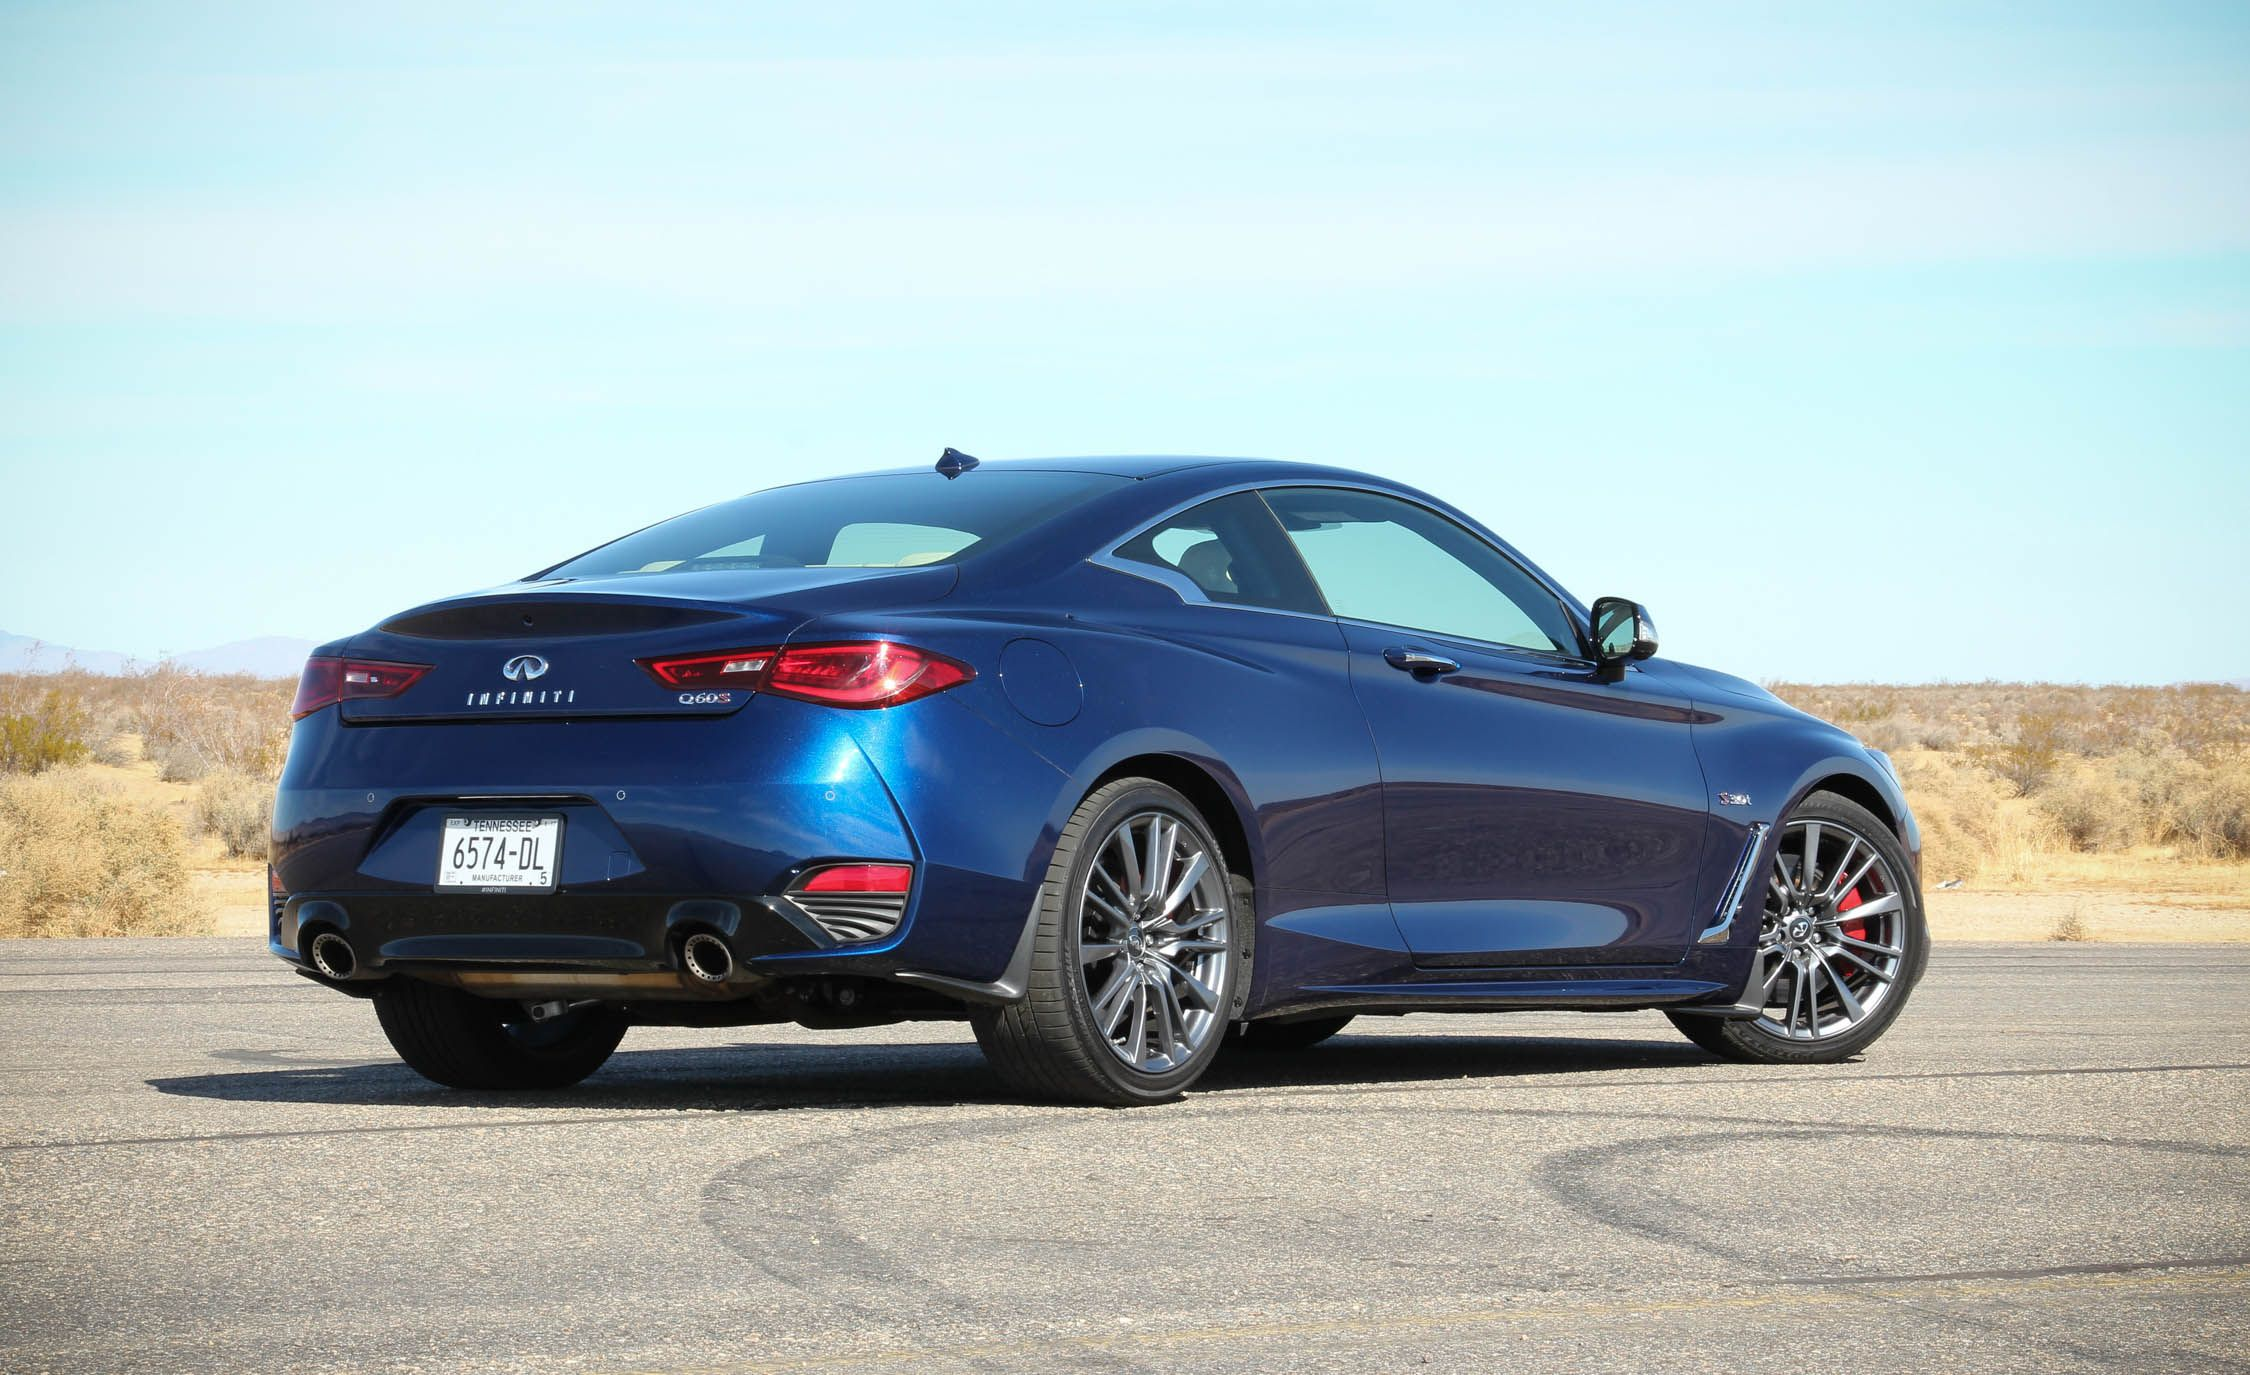 Infiniti Q60 Red Sport 400 Reviews | Infiniti Q60 Red Sport 400 Price,  Photos, And Specs | Car And Driver